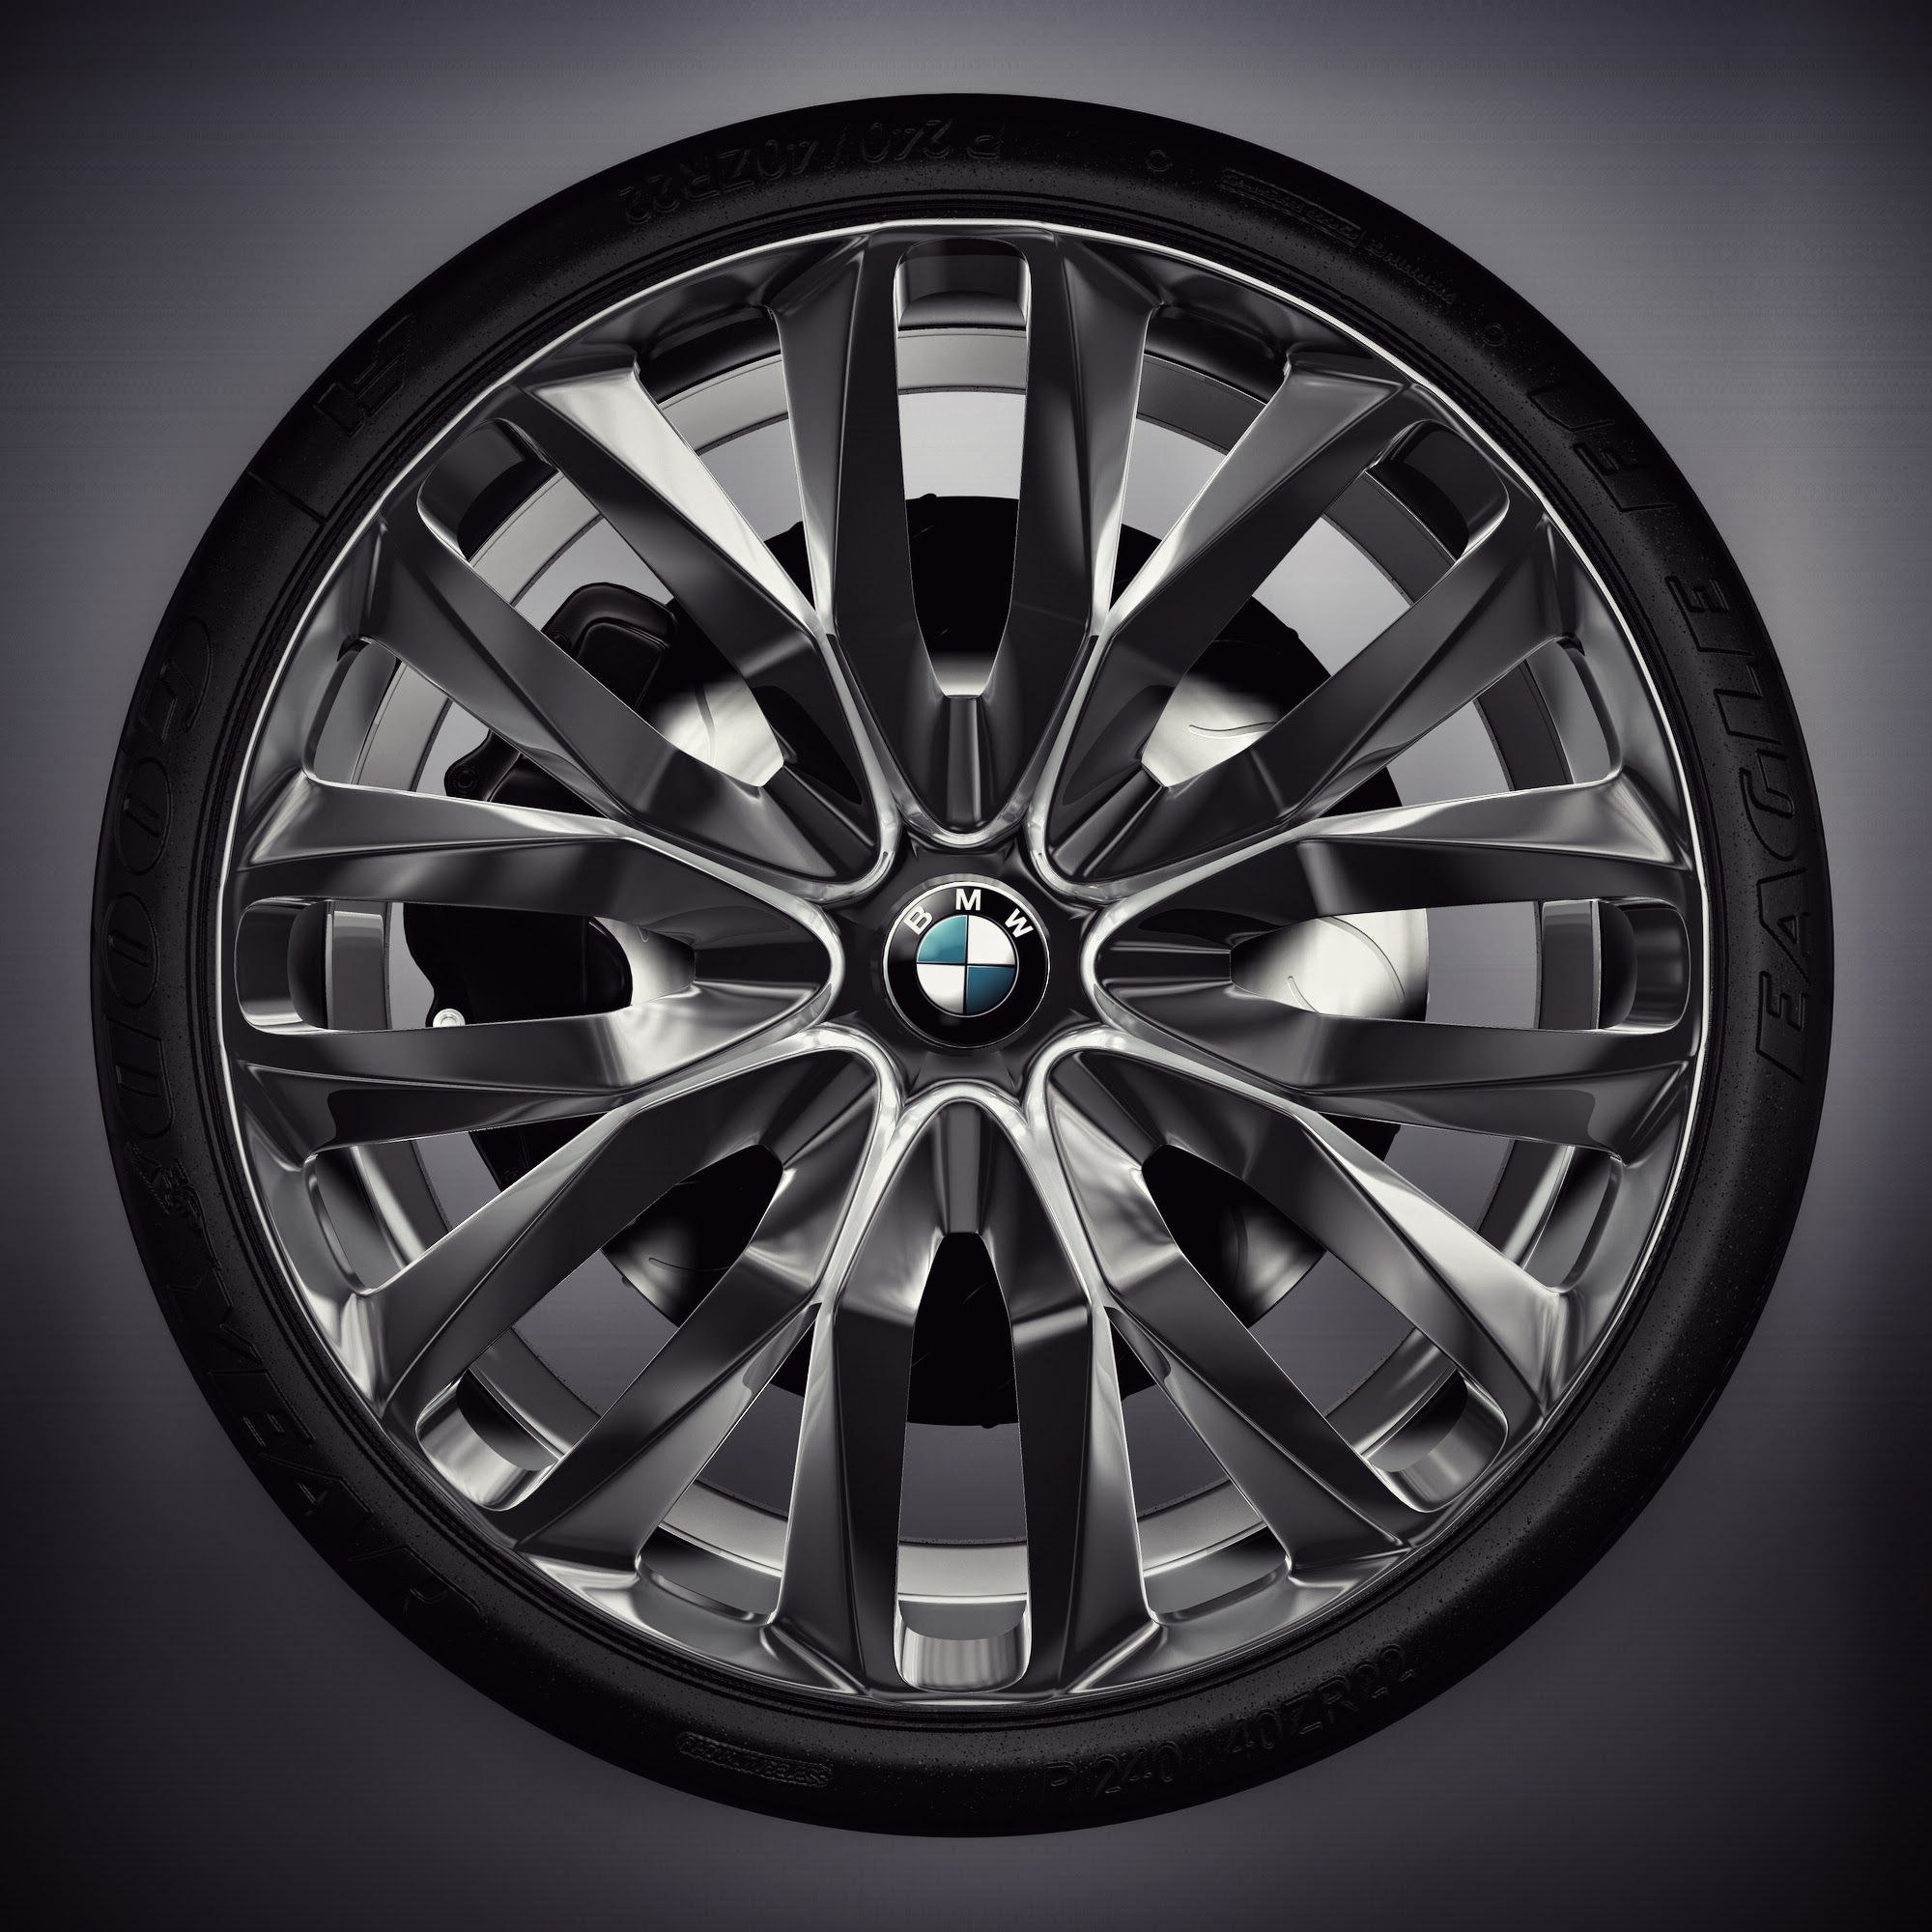 New Wheel Design For Bmw I Exclusively Designed This Wheel For My